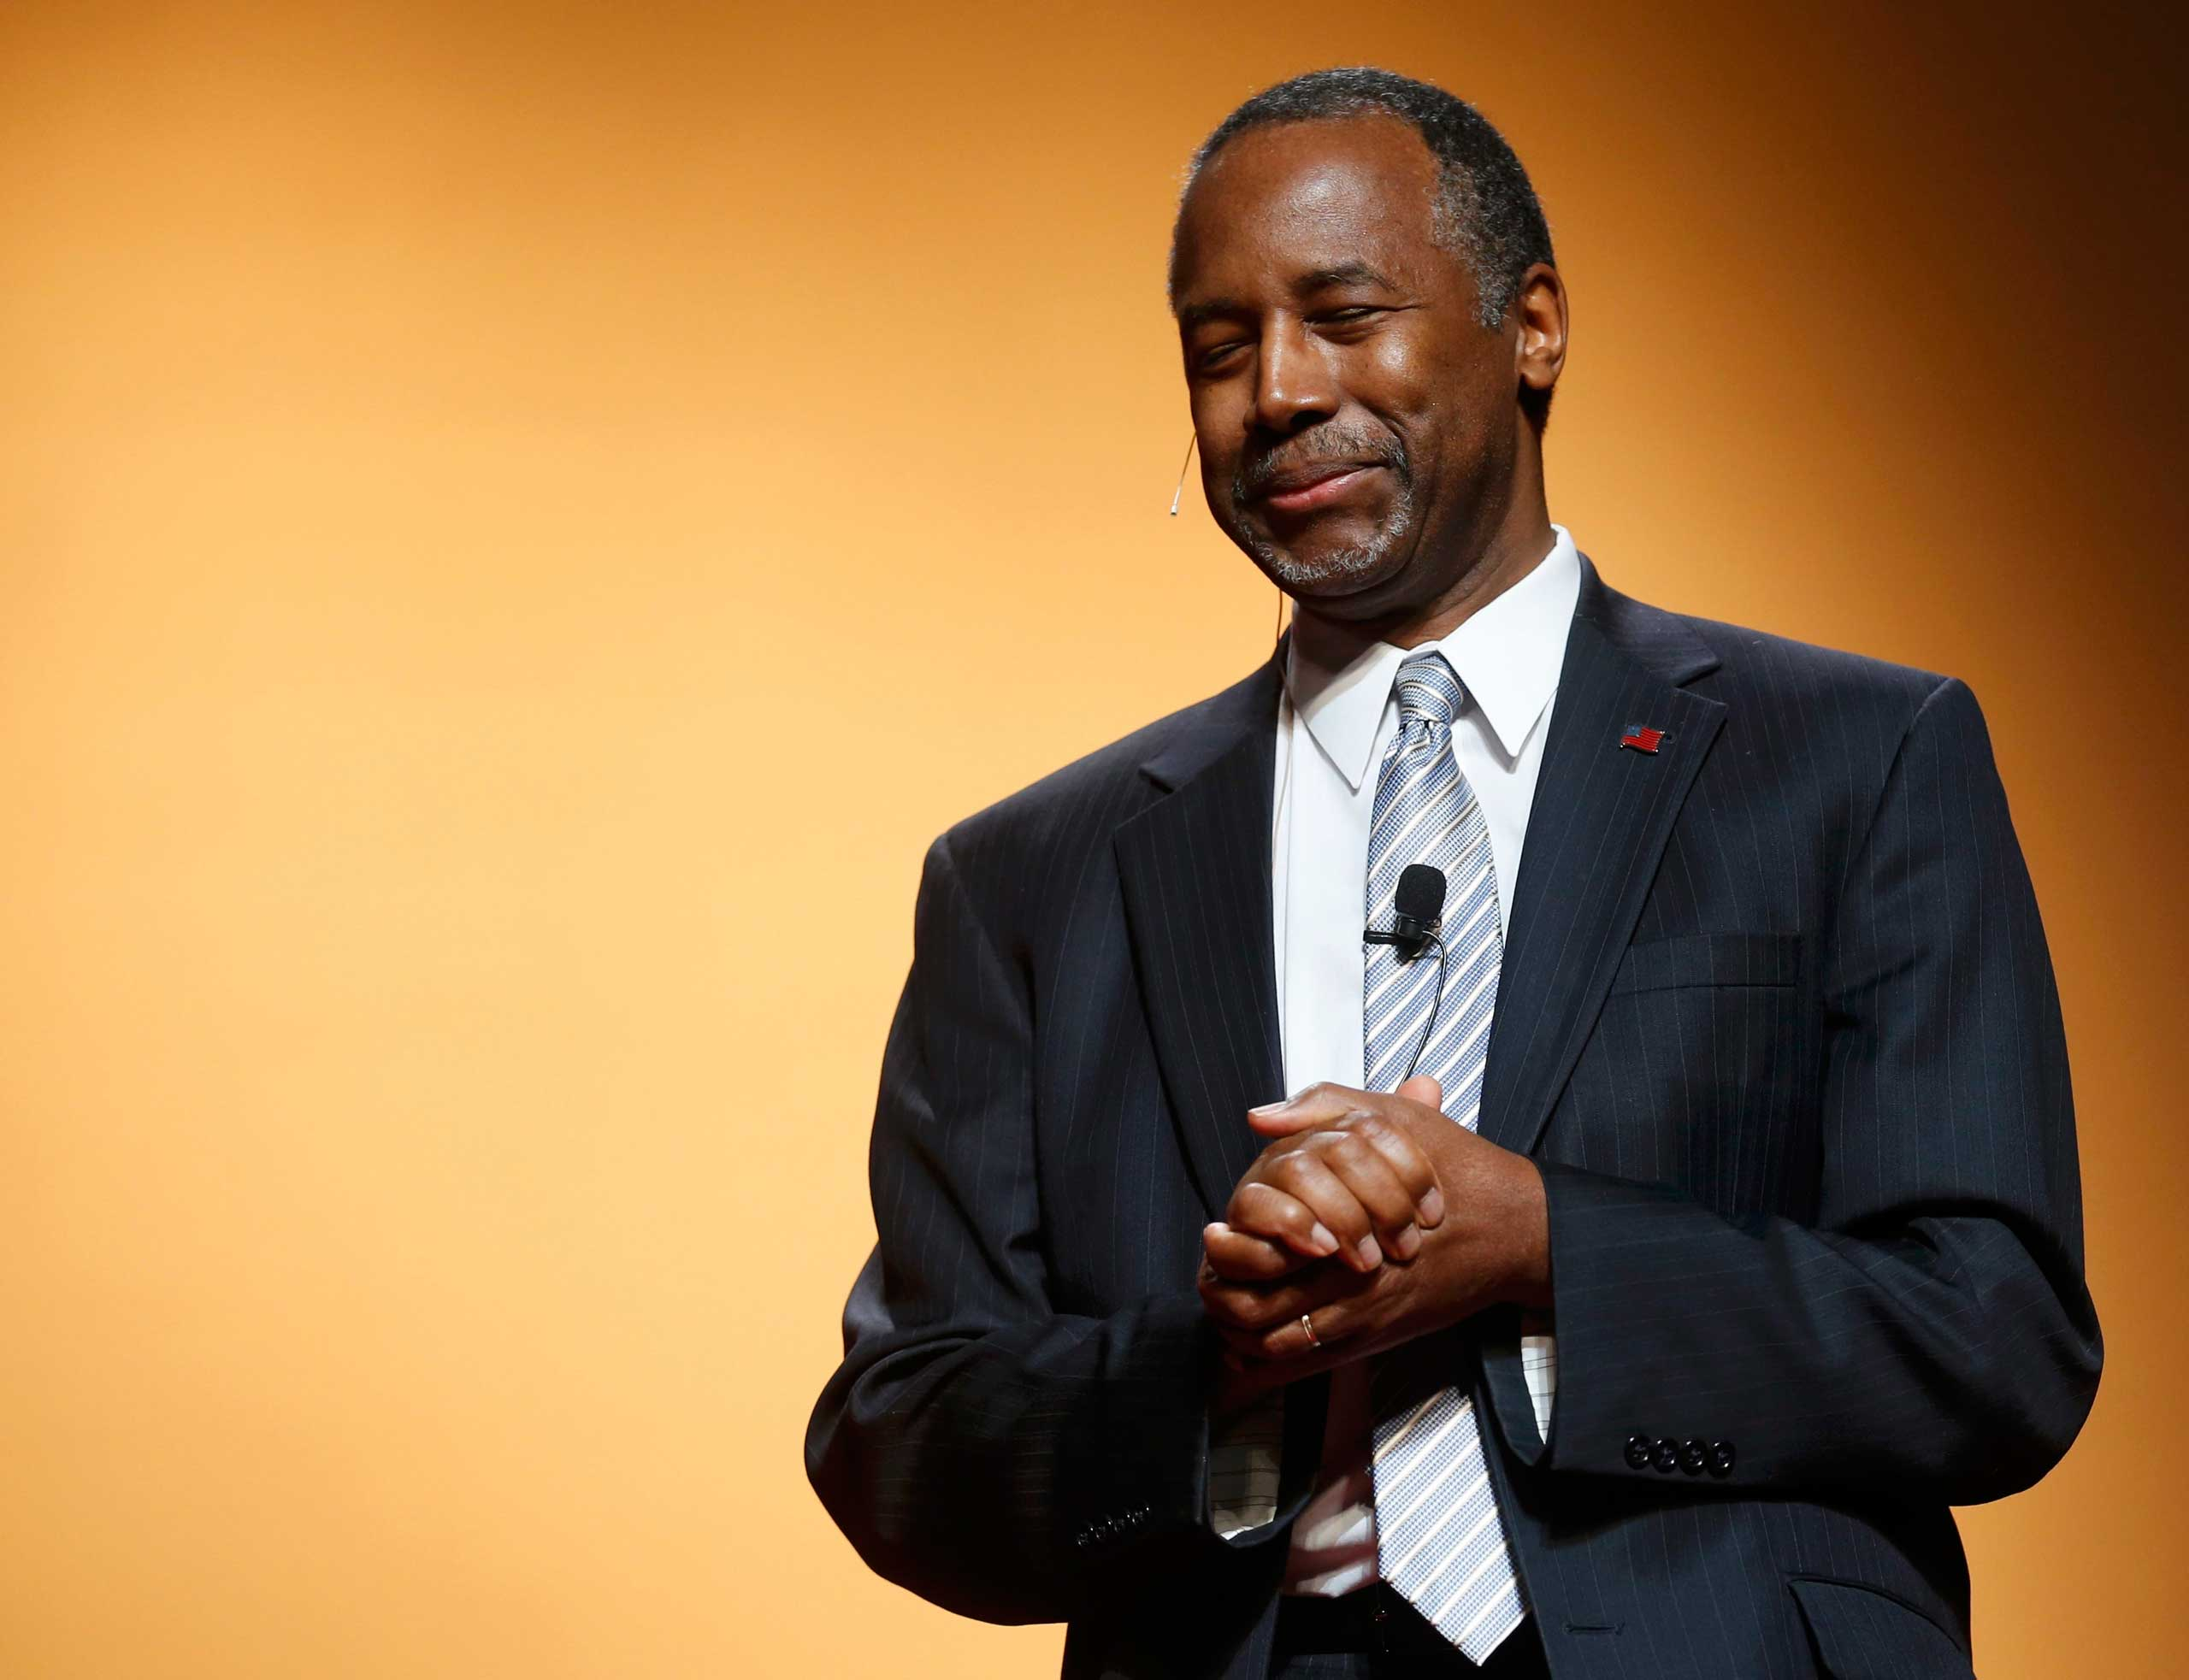 Republican U.S. presidential candidate and retired neurosurgeon Ben Carson officially launches his bid for the Republican presidential nomination in Detroit on May 4, 2015.